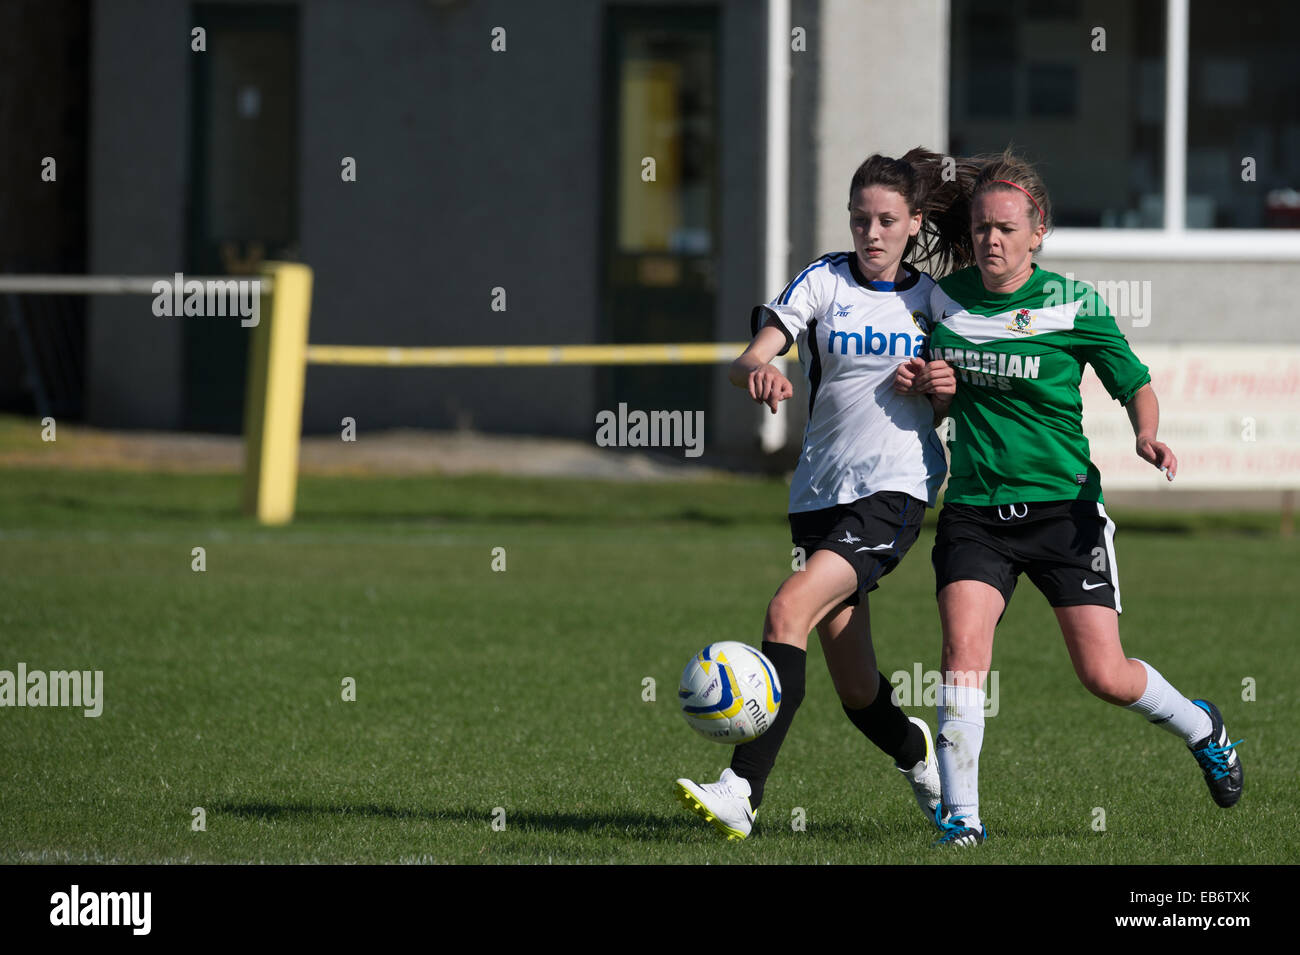 Going for the ball: Two young women girls playing football soccer, competing challenging for the football UK - Stock Image